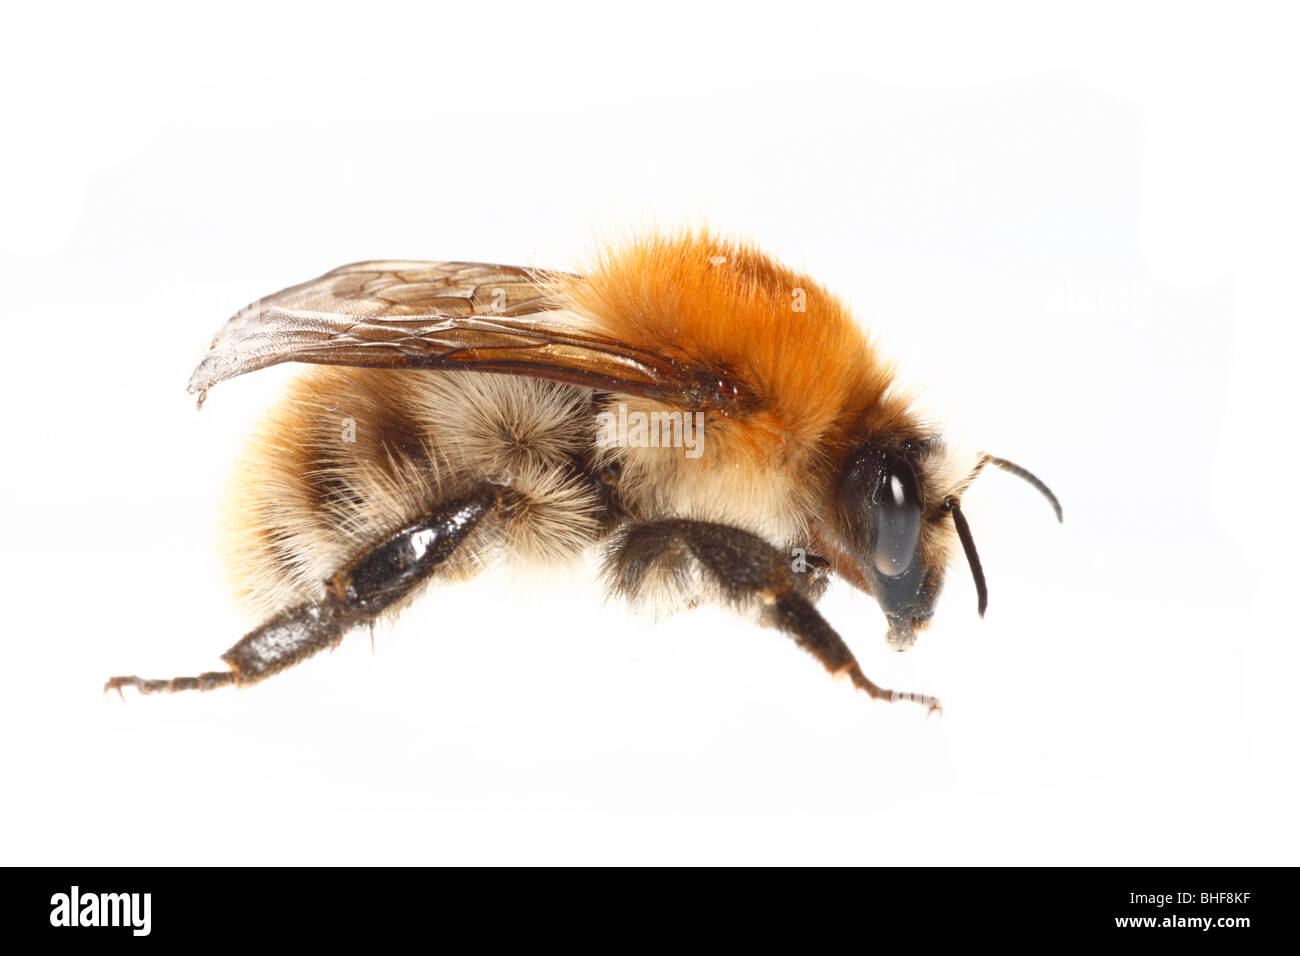 Common Carder Bumblebee (Bombus pascuorum) queen. Live insect photographed against a white background on a portable - Stock Image